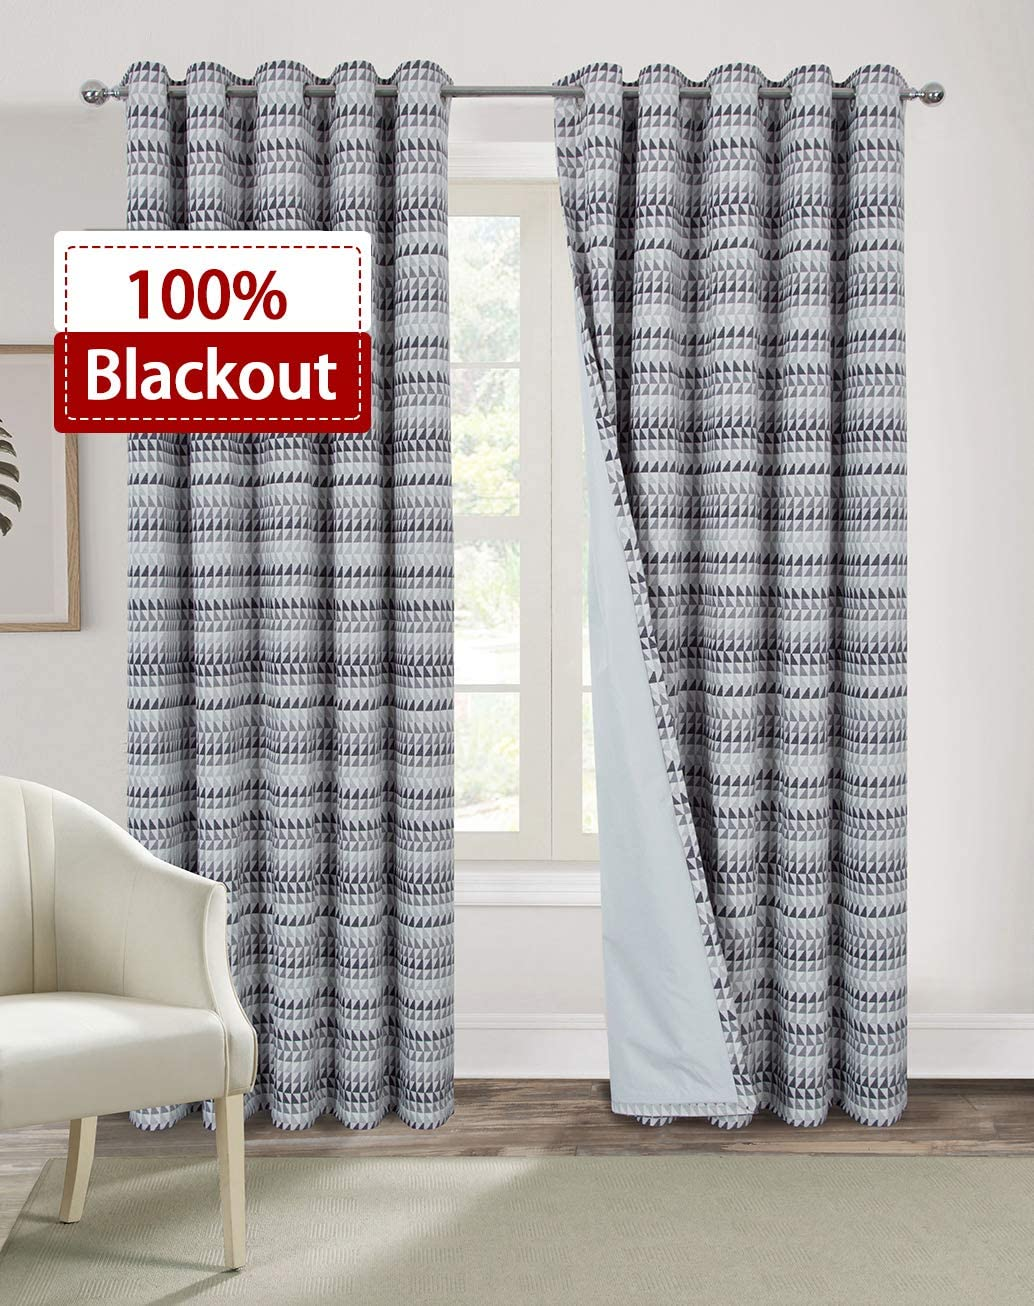 Alexandra Cole 100 Blackout Chenille Curtains for Bedroom Thermal Insulated Window Curtains 95 Inch Length Kid Curtains with Triangle Geometric Pattern 2 Panels Grey